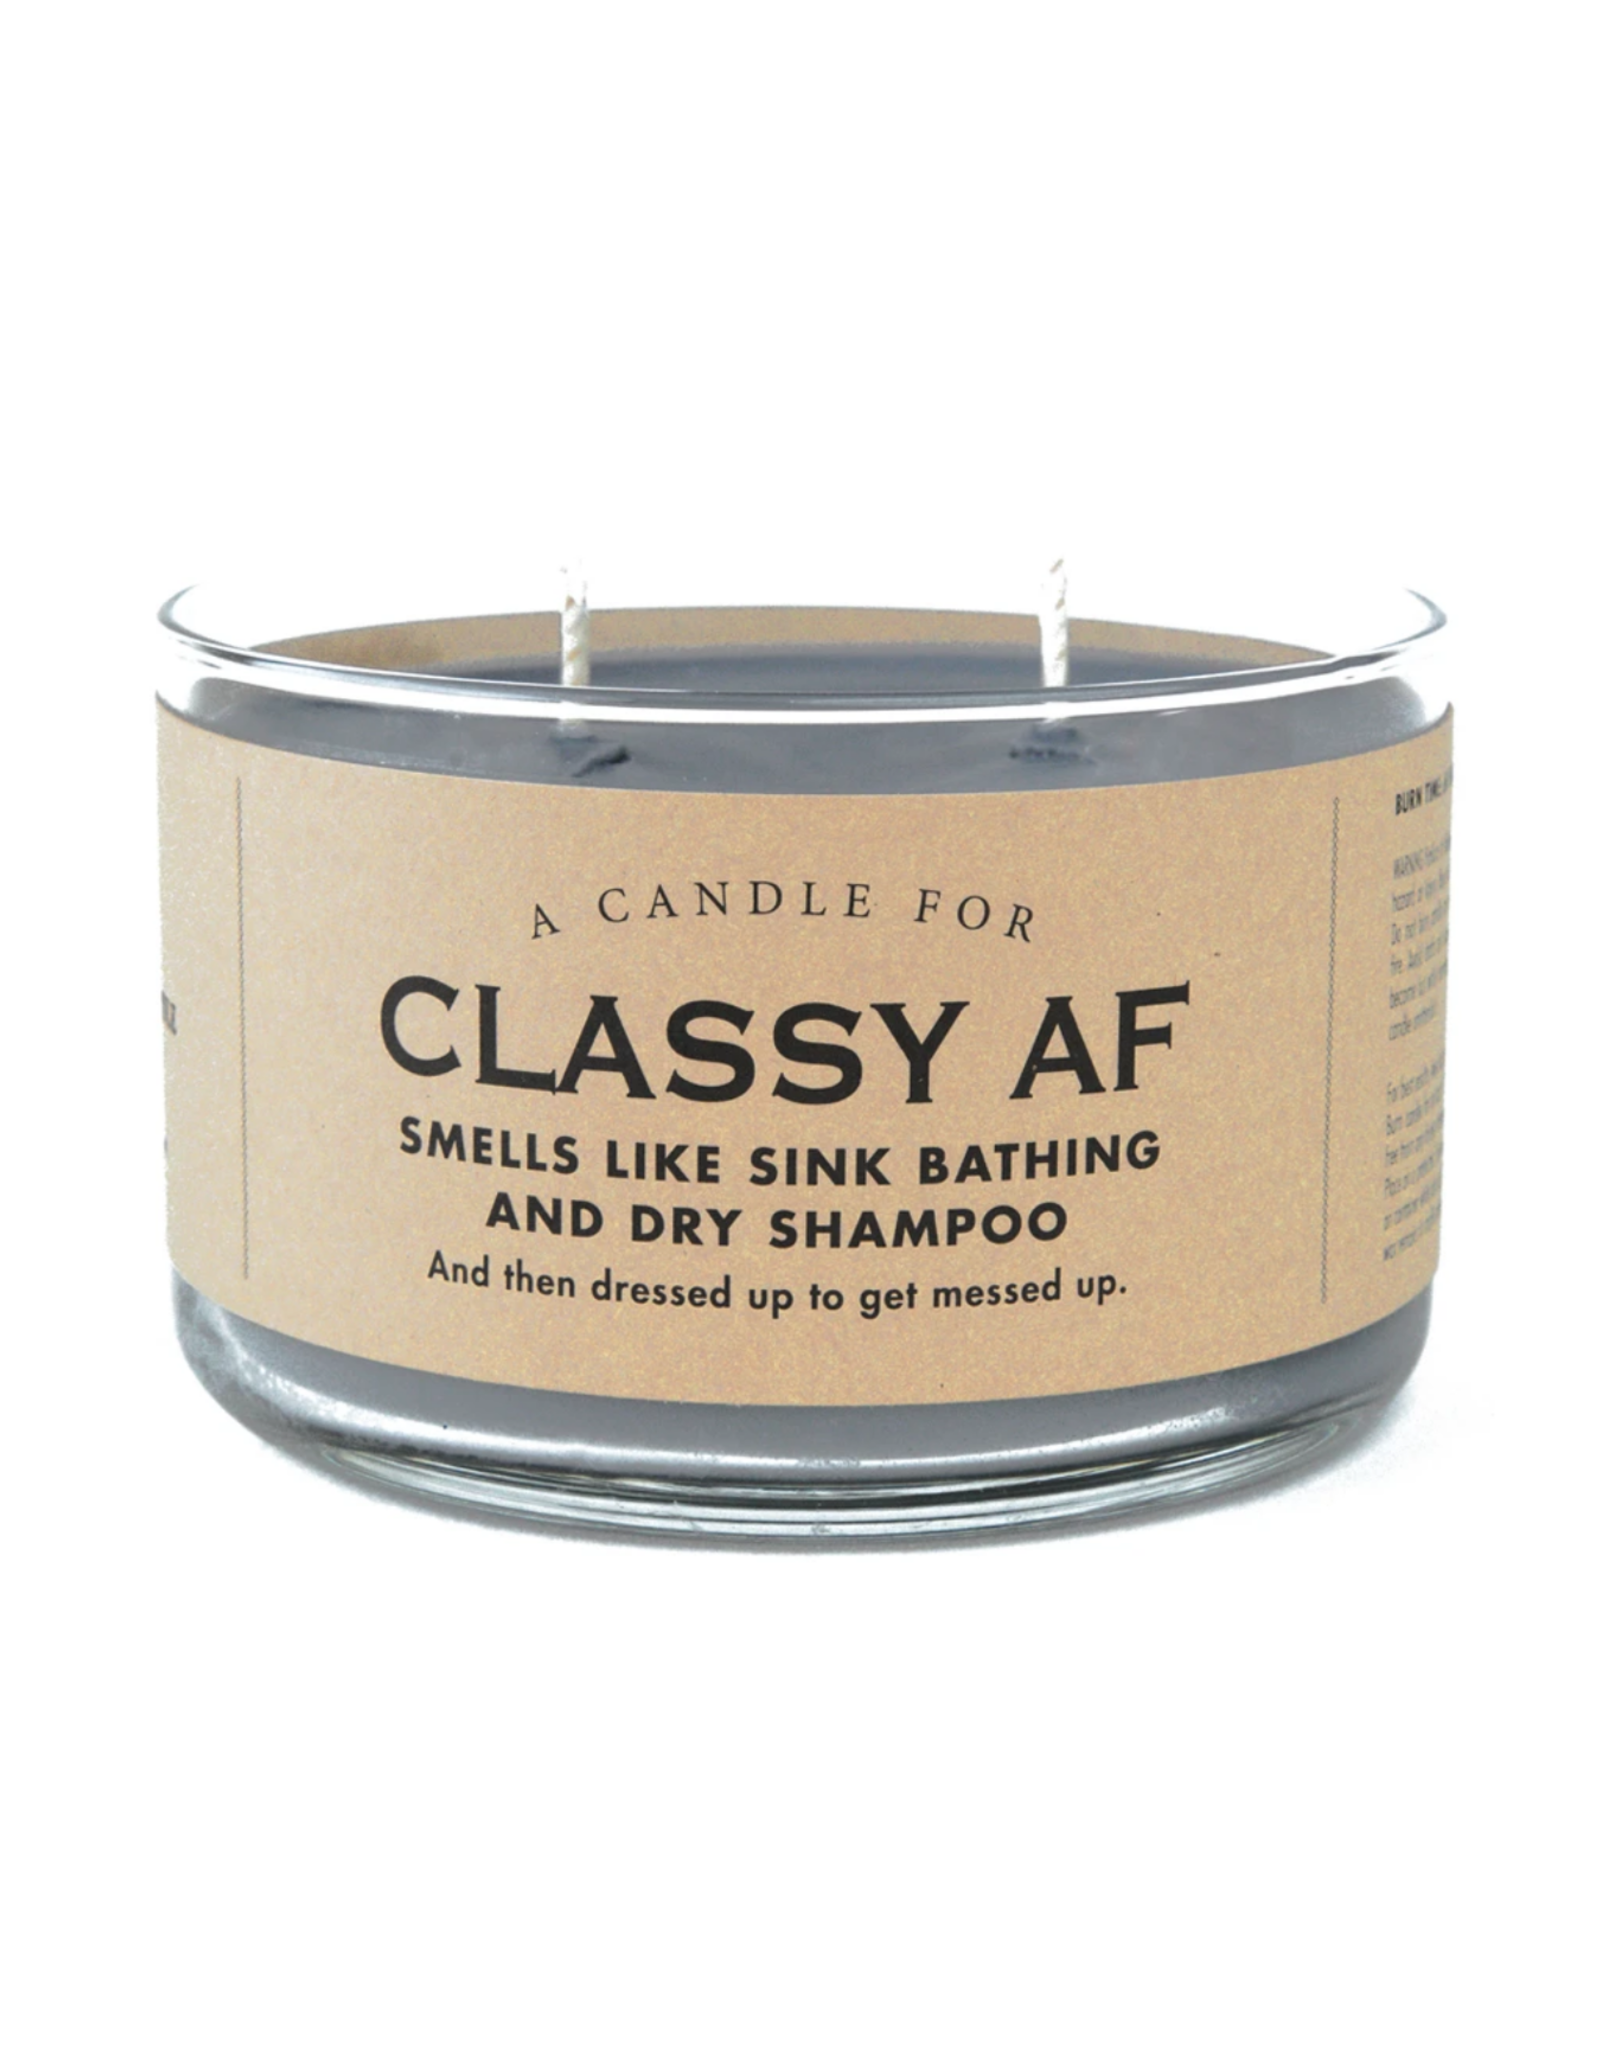 A Candle for Classy AF